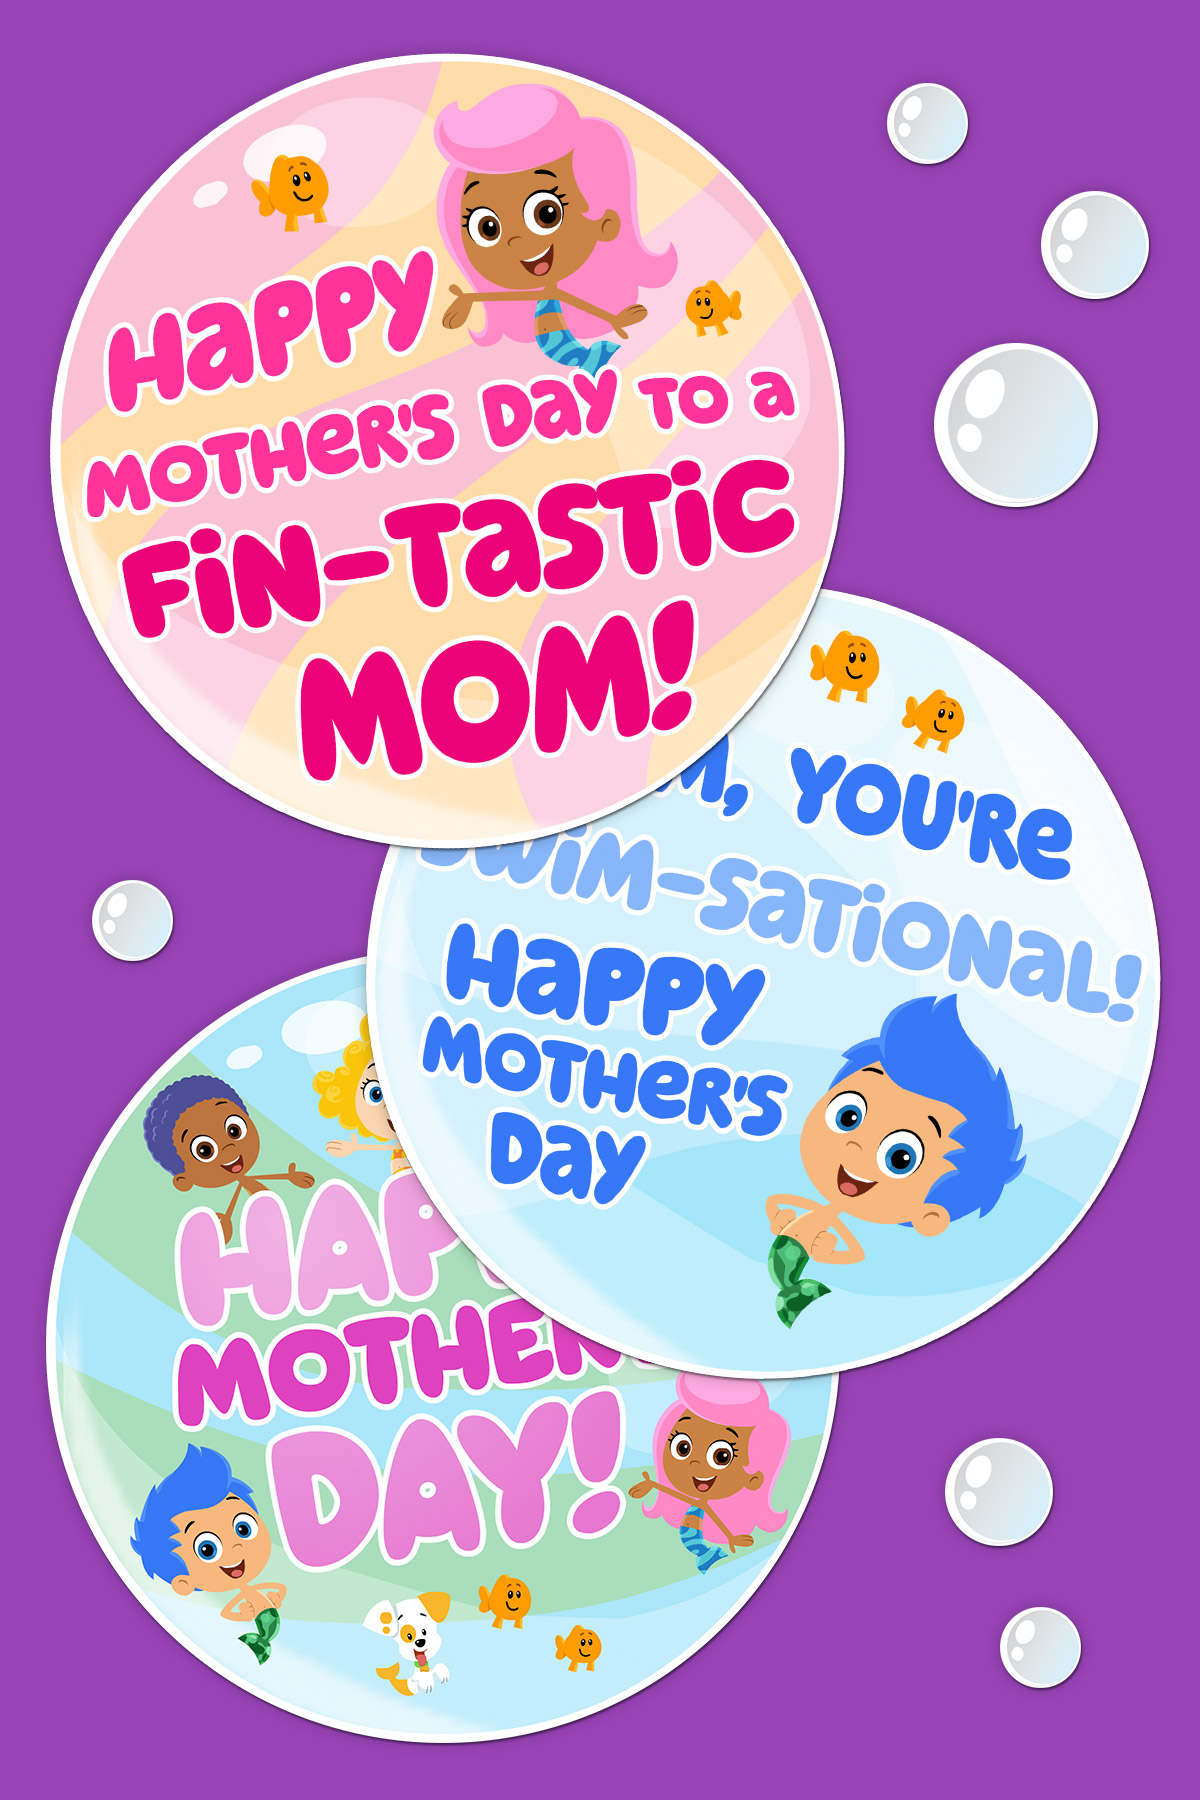 photo relating to Bubble Guppies Printable known as Bubble Guppies Printable Moms Working day Playing cards Nickelodeon